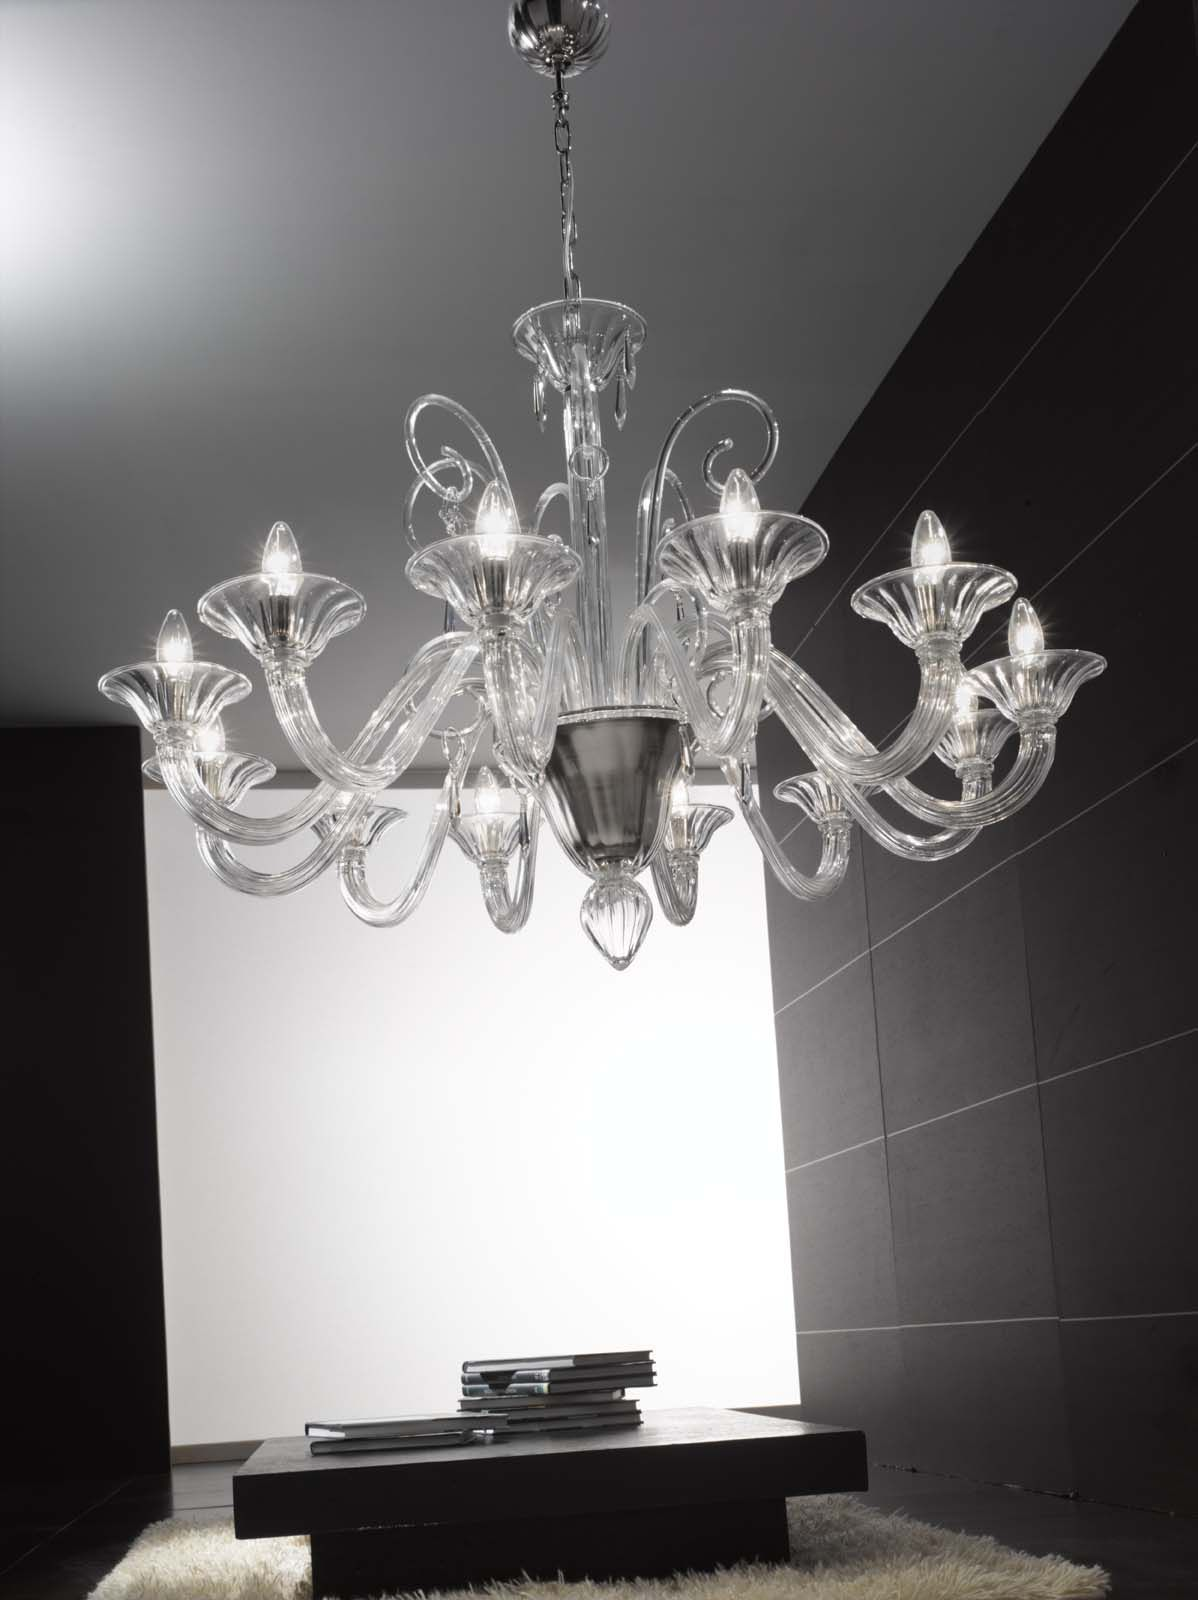 Verdi Handmade Clear Glass Venetian Chandelier From 912 95